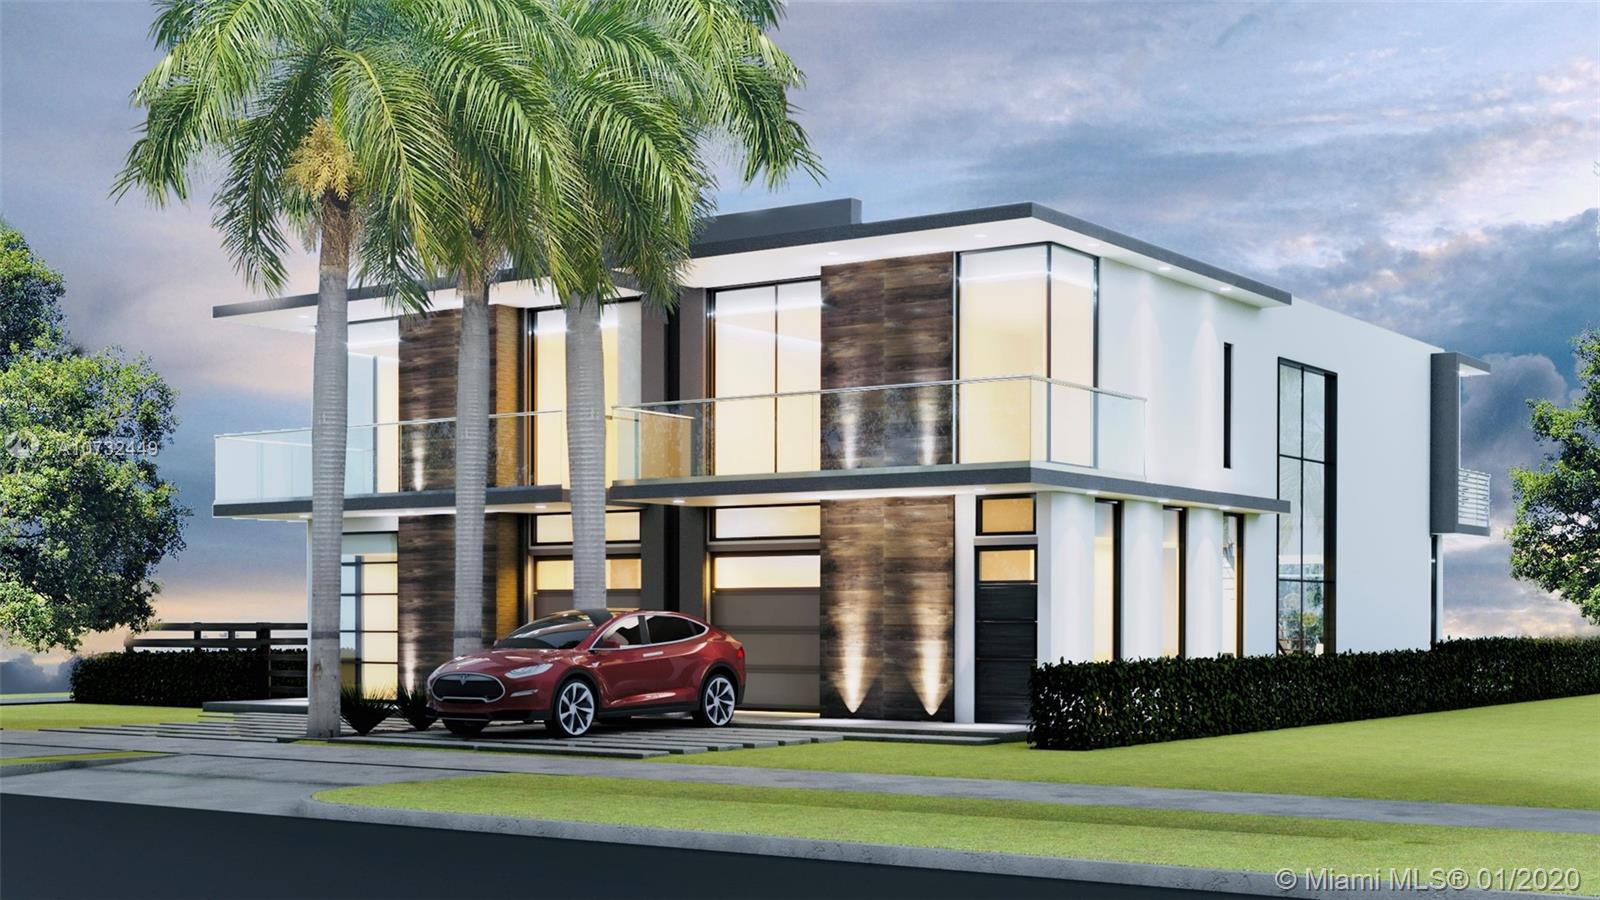 Introducing The Estates at Coral Ridge where iconic contemporary architecture meets a luxurious lifestyle. Designed by a world-famous and awarded architect & designer specifically with exquisite interior design, style, and modern elegance. A brand new and now already under construction boutique attached family homes within a walking distance from Fort Lauderdale Beach. The Estates at Coral Ridge exclusively offer 4 luxurious two-story modern attached family homes with private swimming pools to each resident, 10-foot ceilings and floor to ceiling impact glass windows. Other features include state of the art European upscale appliances, glass balcony railings, elegant staircases, open space floor plan, fenced backyard, and optional upgrades. Expected delivery summer of 2020.